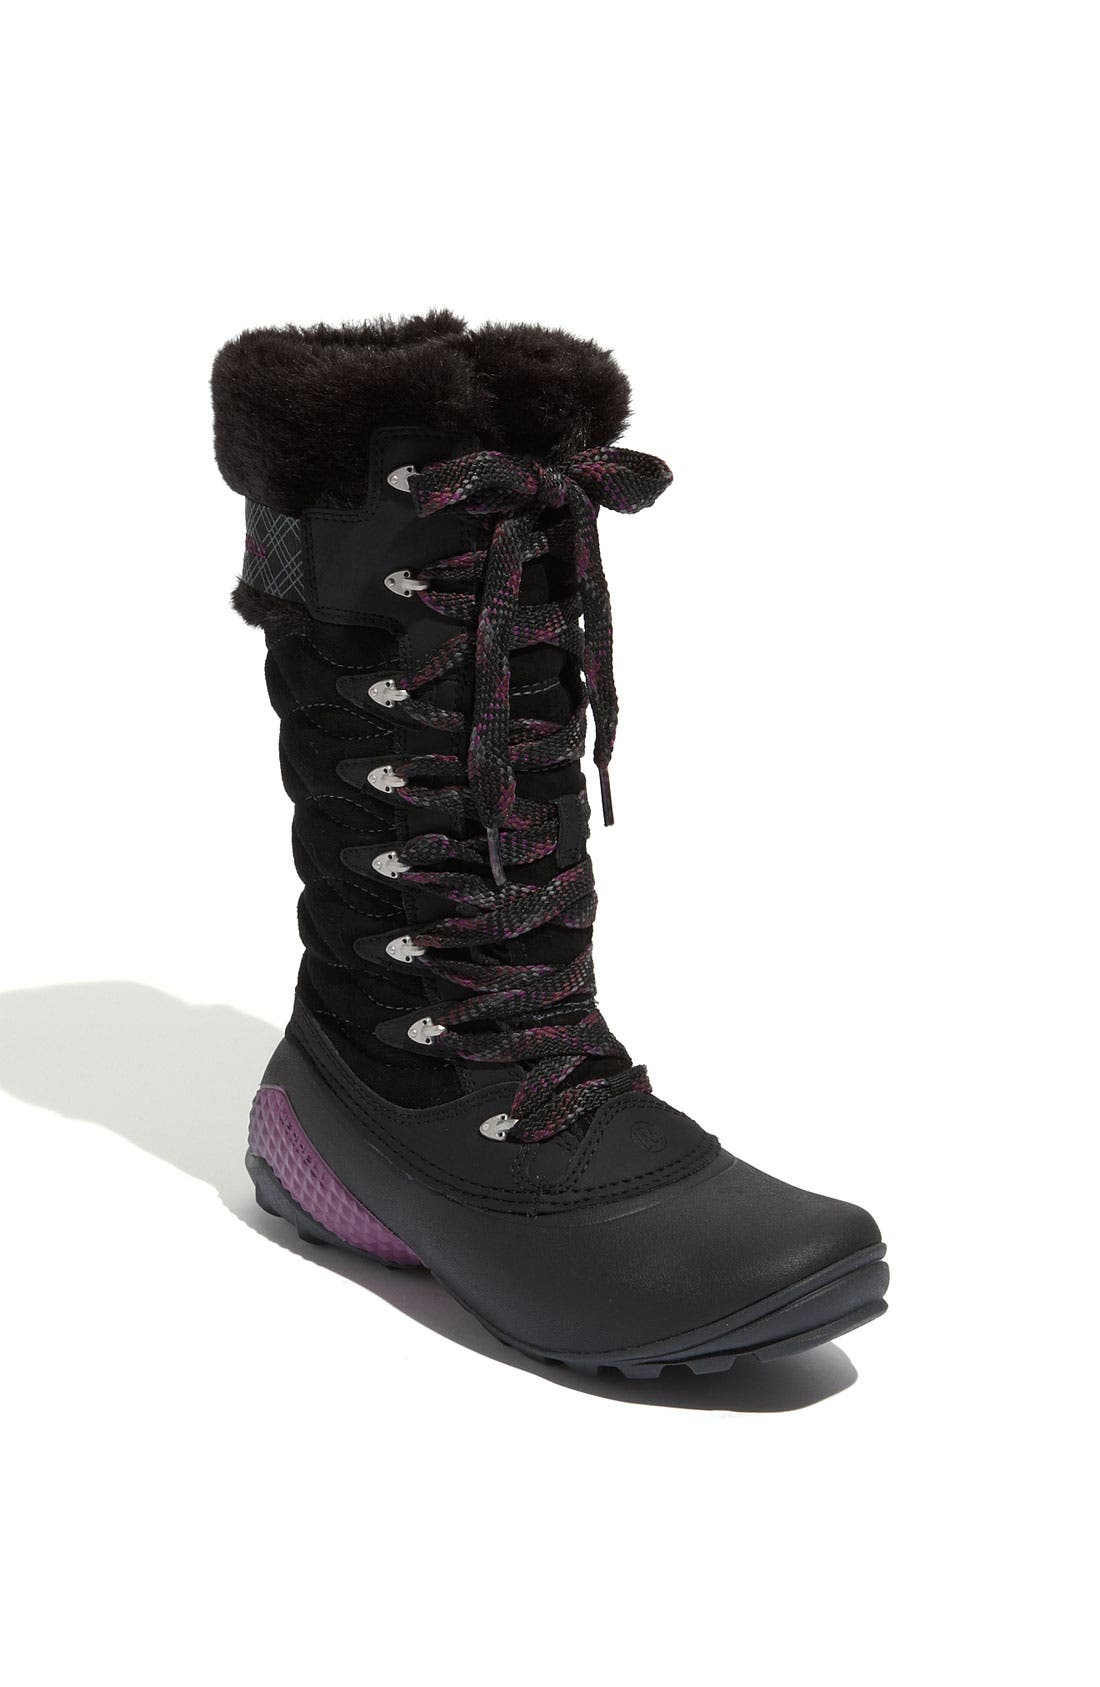 'Winterbelle Peak' Waterproof Boot,                             Main thumbnail 1, color,                             001